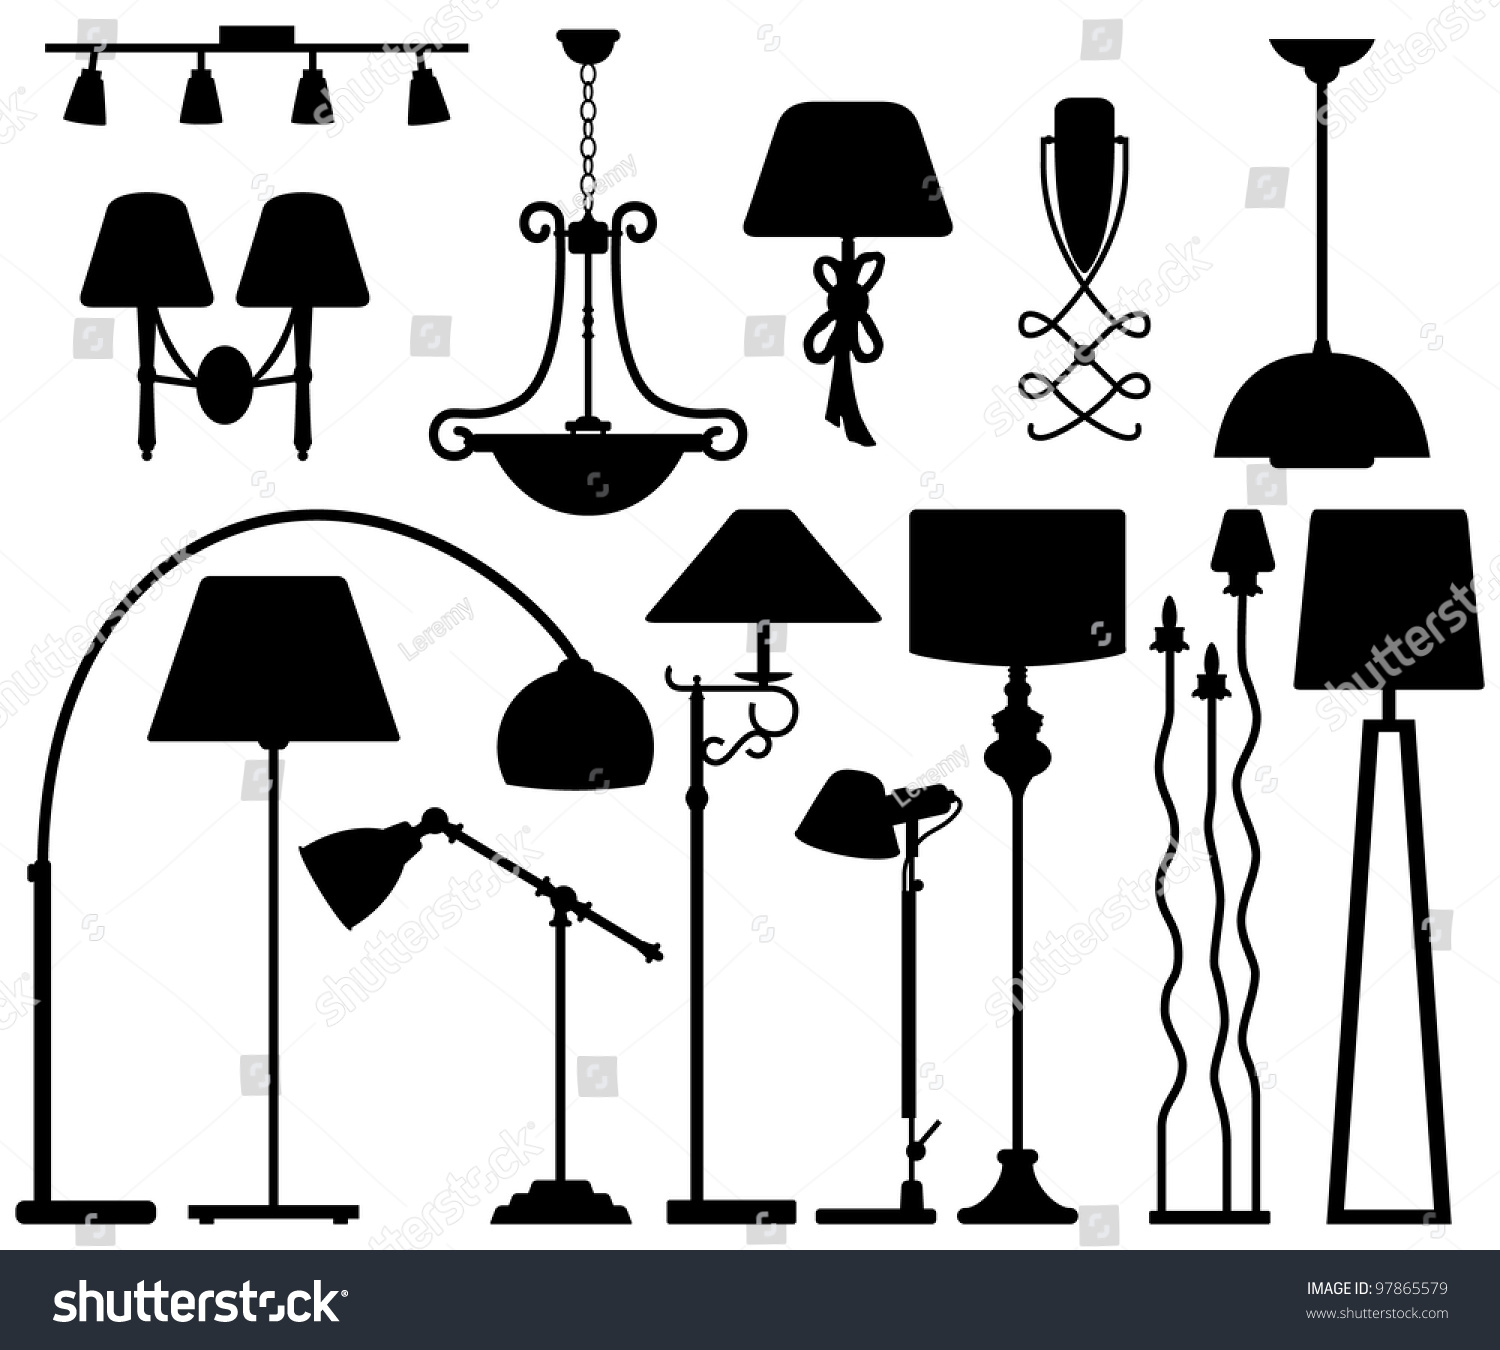 Ceiling Design Vector Lamp Design For Floor Ceiling Wall Stock Vector